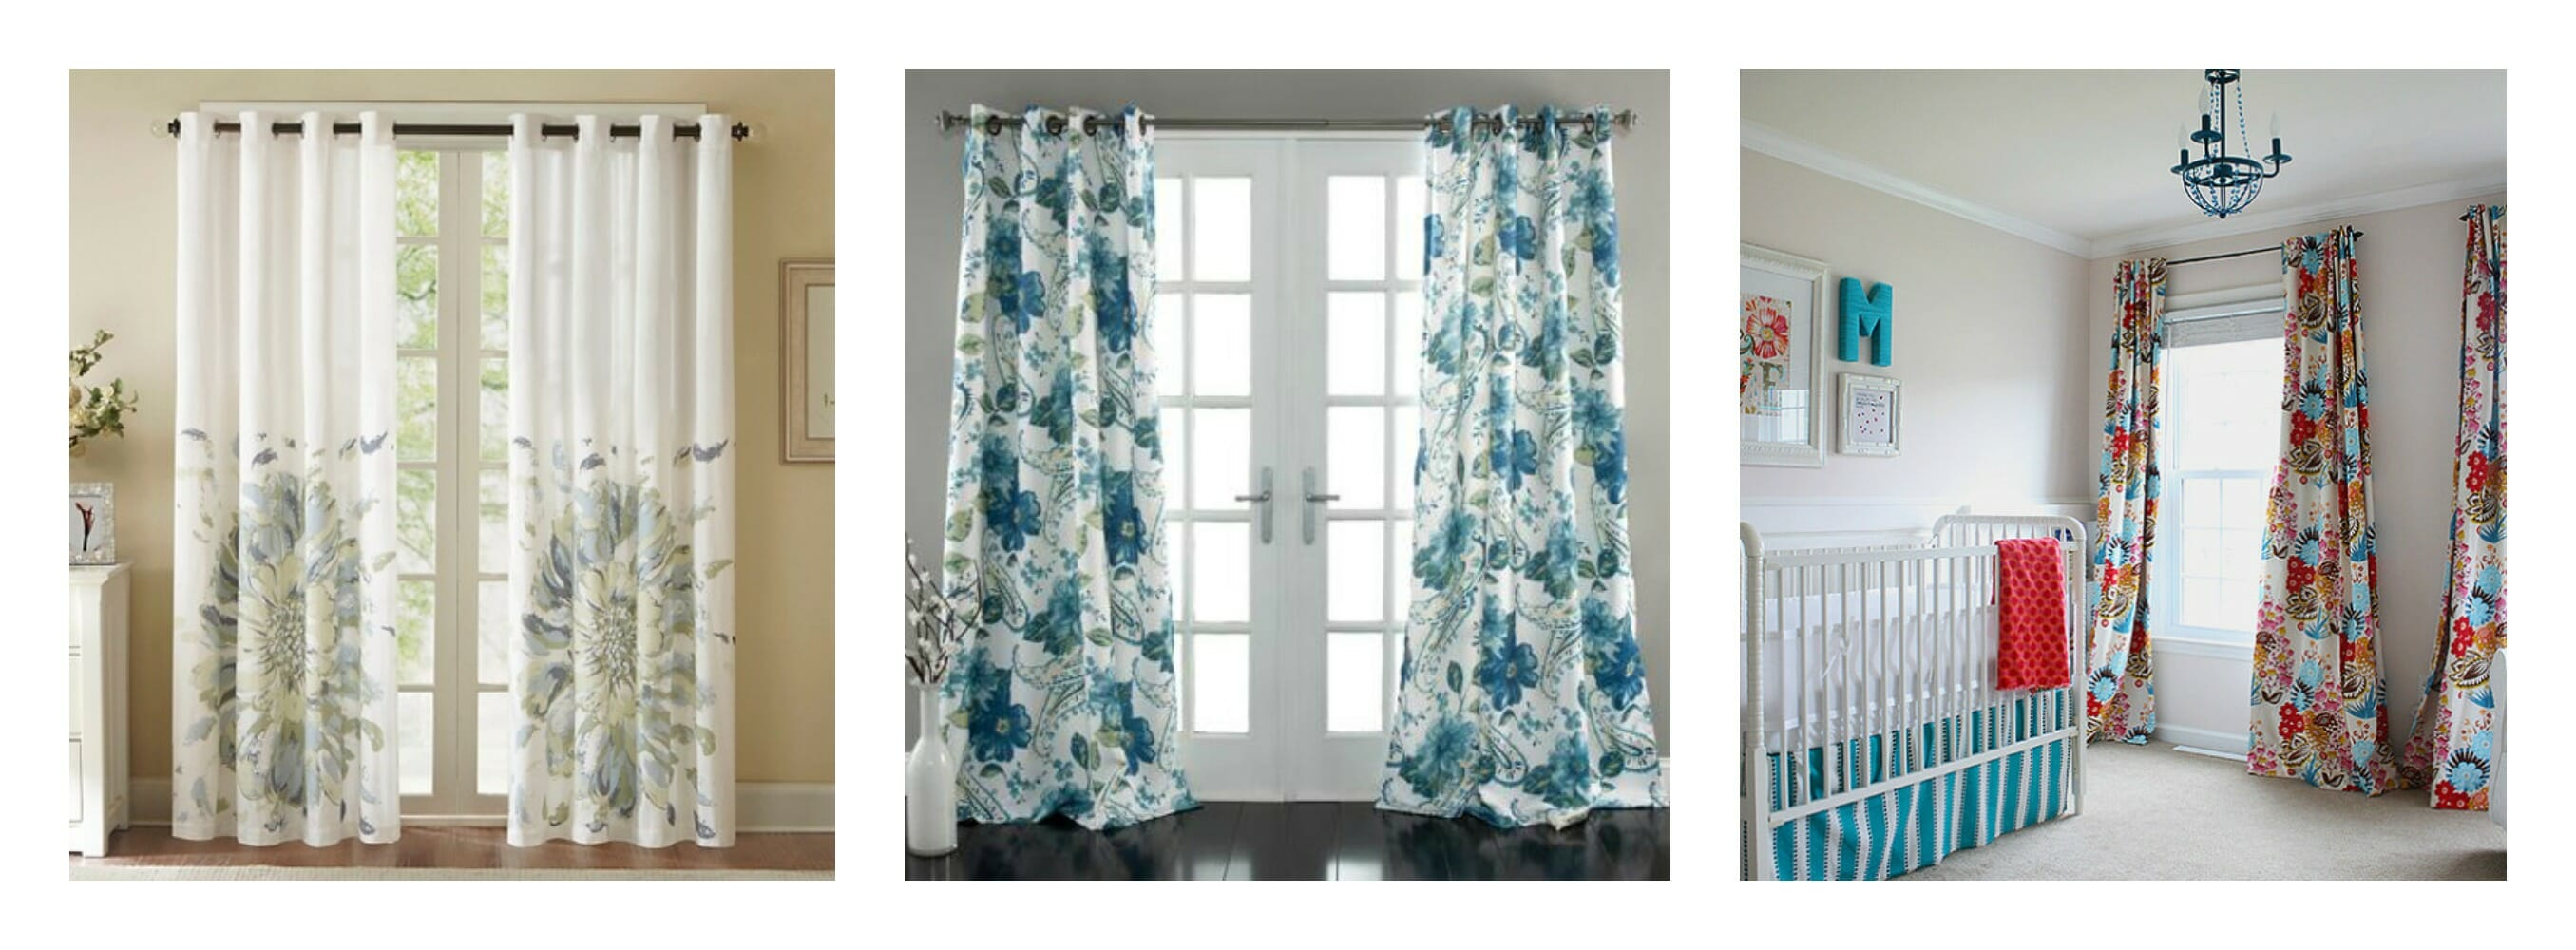 windows window ideas x throughout photo designs sizing fun curtain treatment bedroom curtains